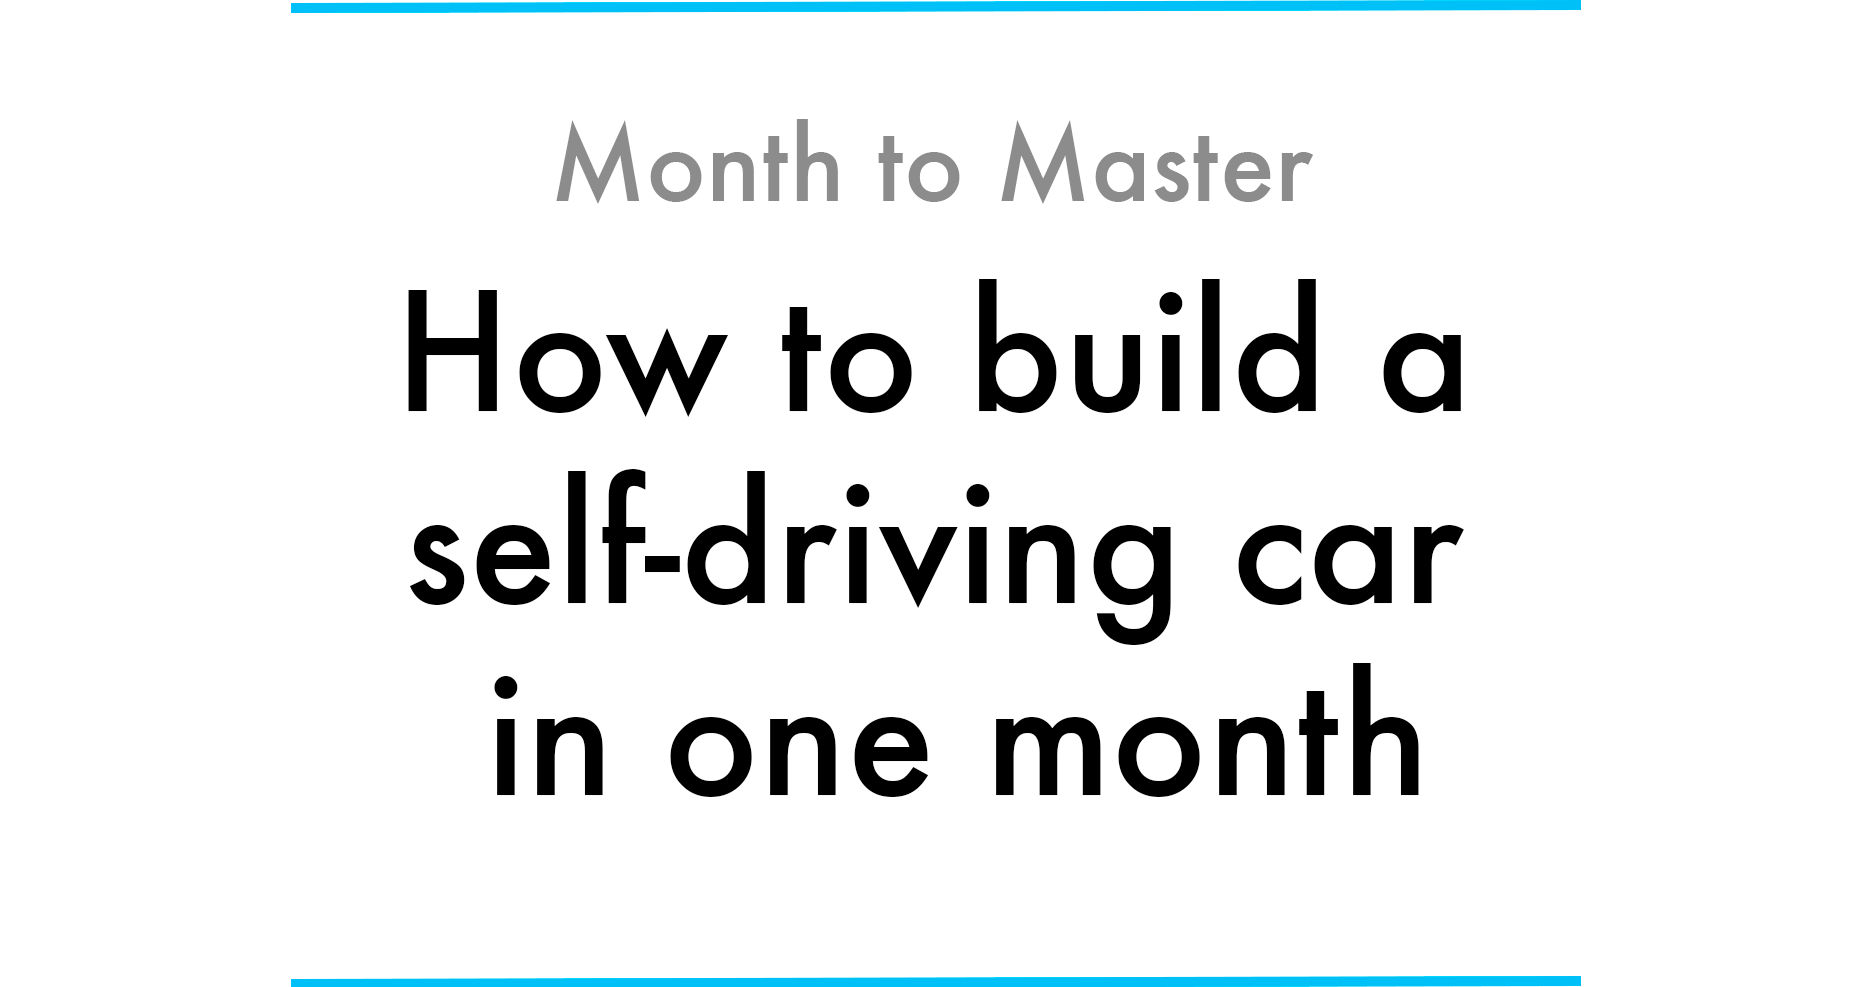 How to build a self-driving car in one month - Max Deutsch